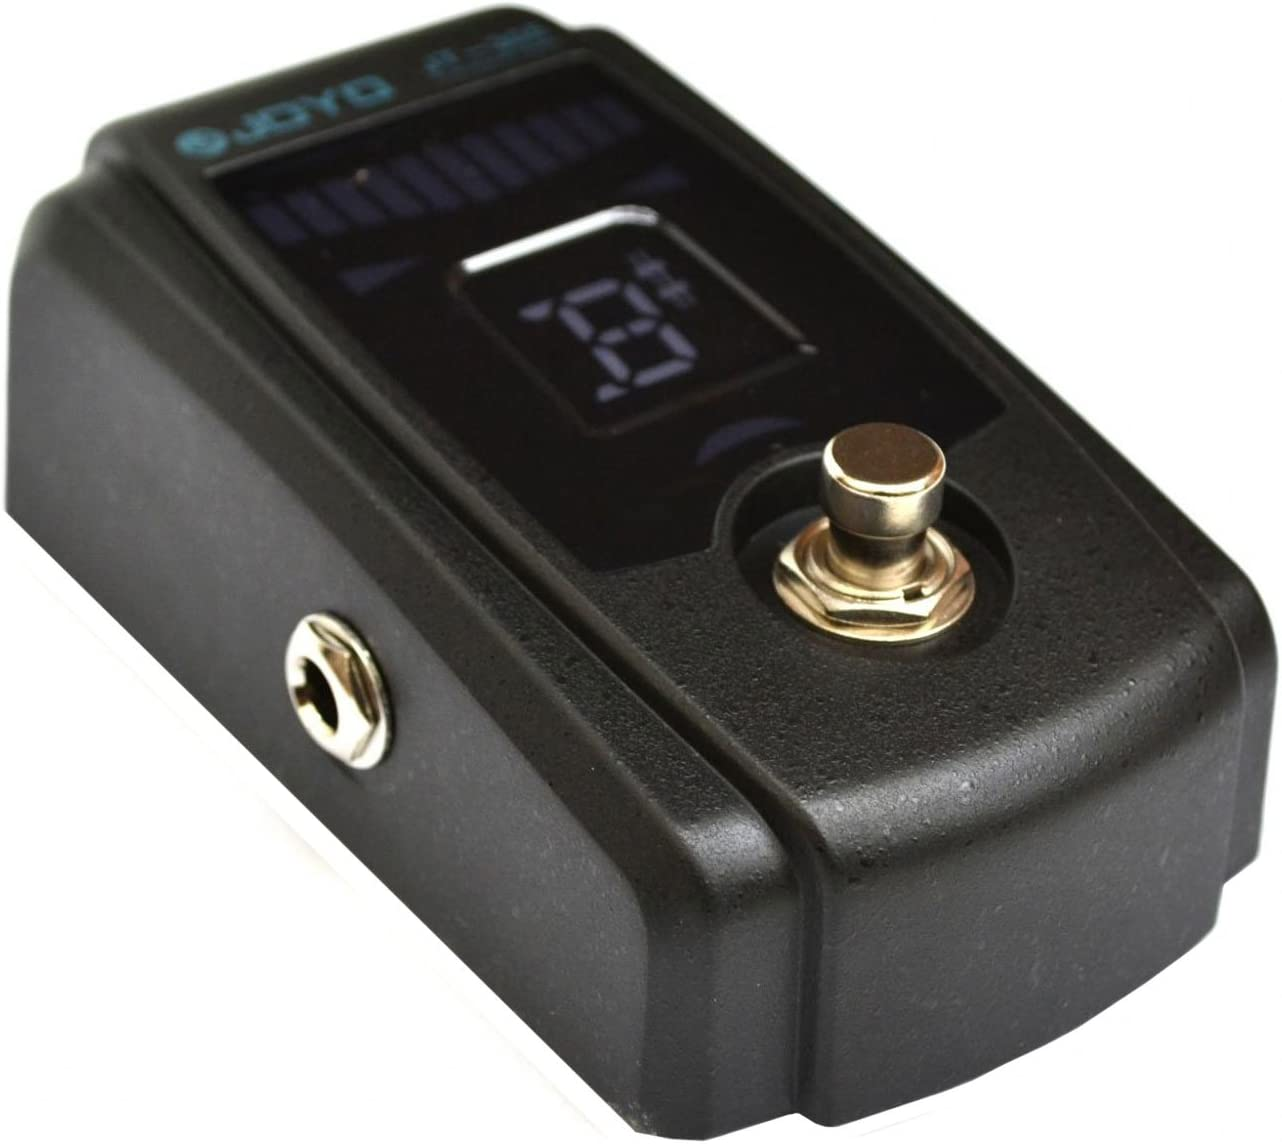 Joyo Jt-305 Guitar Bass Chromatic Pedal Tuner, True Bypass, 4 Display Modes Mini Pedal